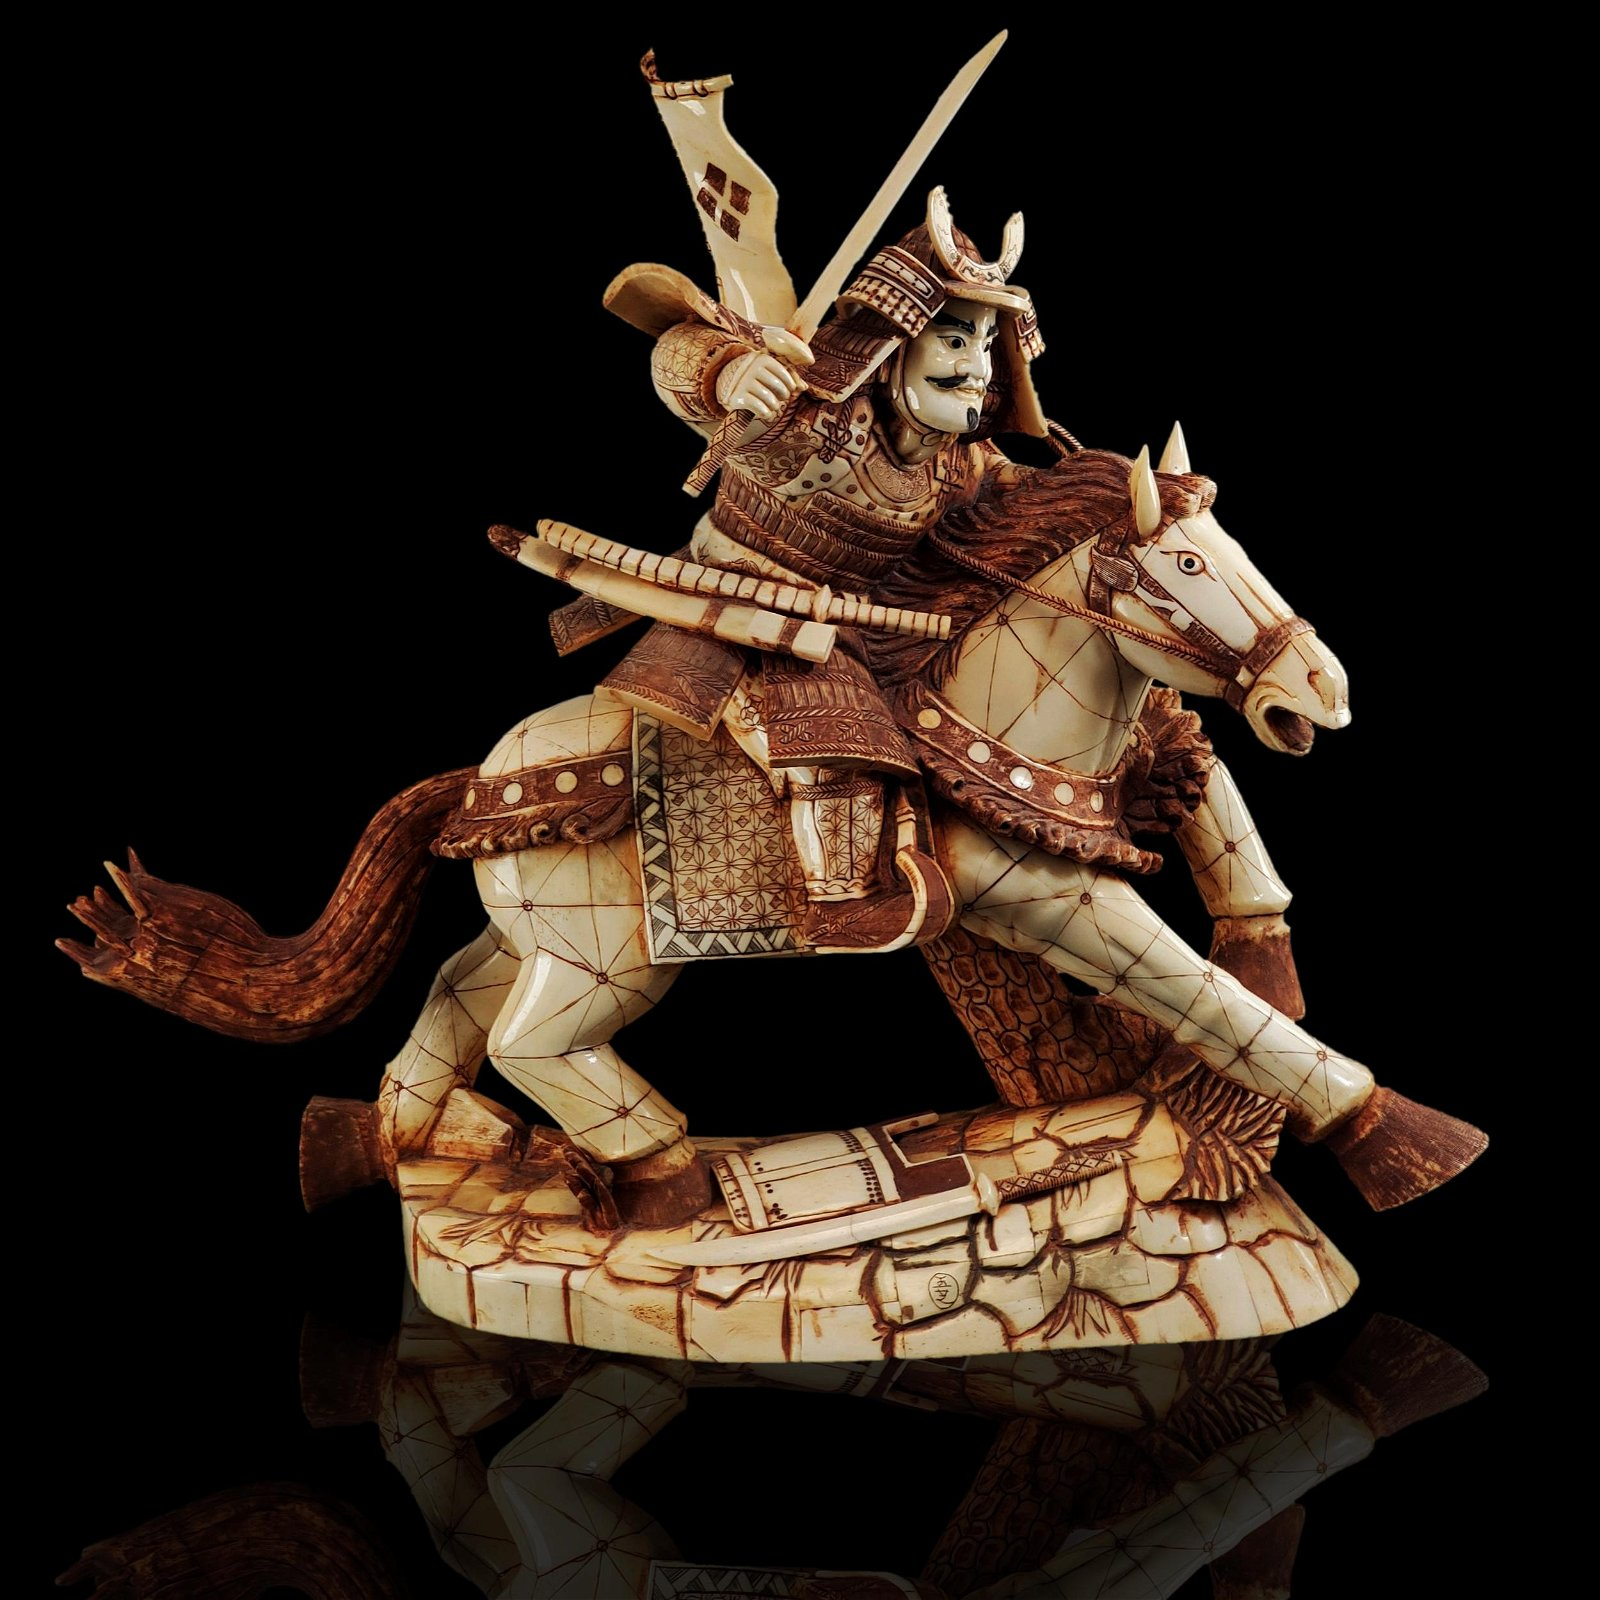 Lg Japanese carved bone sculpture of a warrior on horse